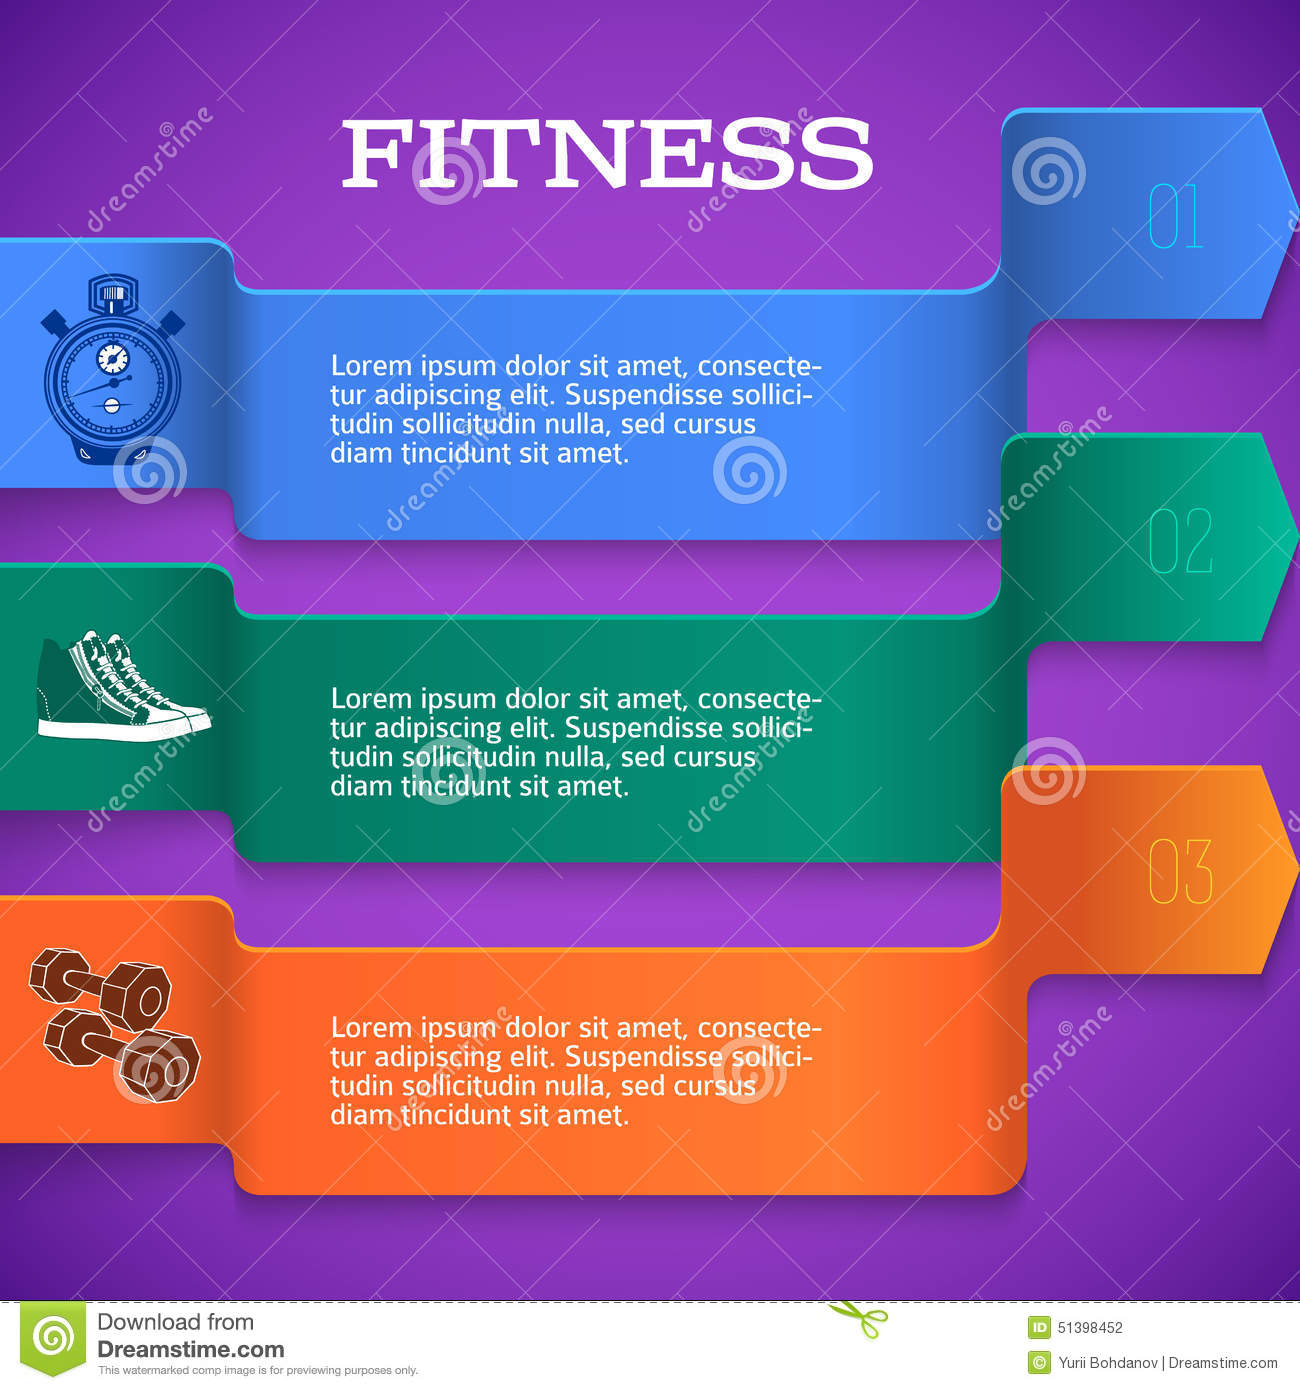 Fitness-template-brochure-page-purple-background Stock Vector - Image ...